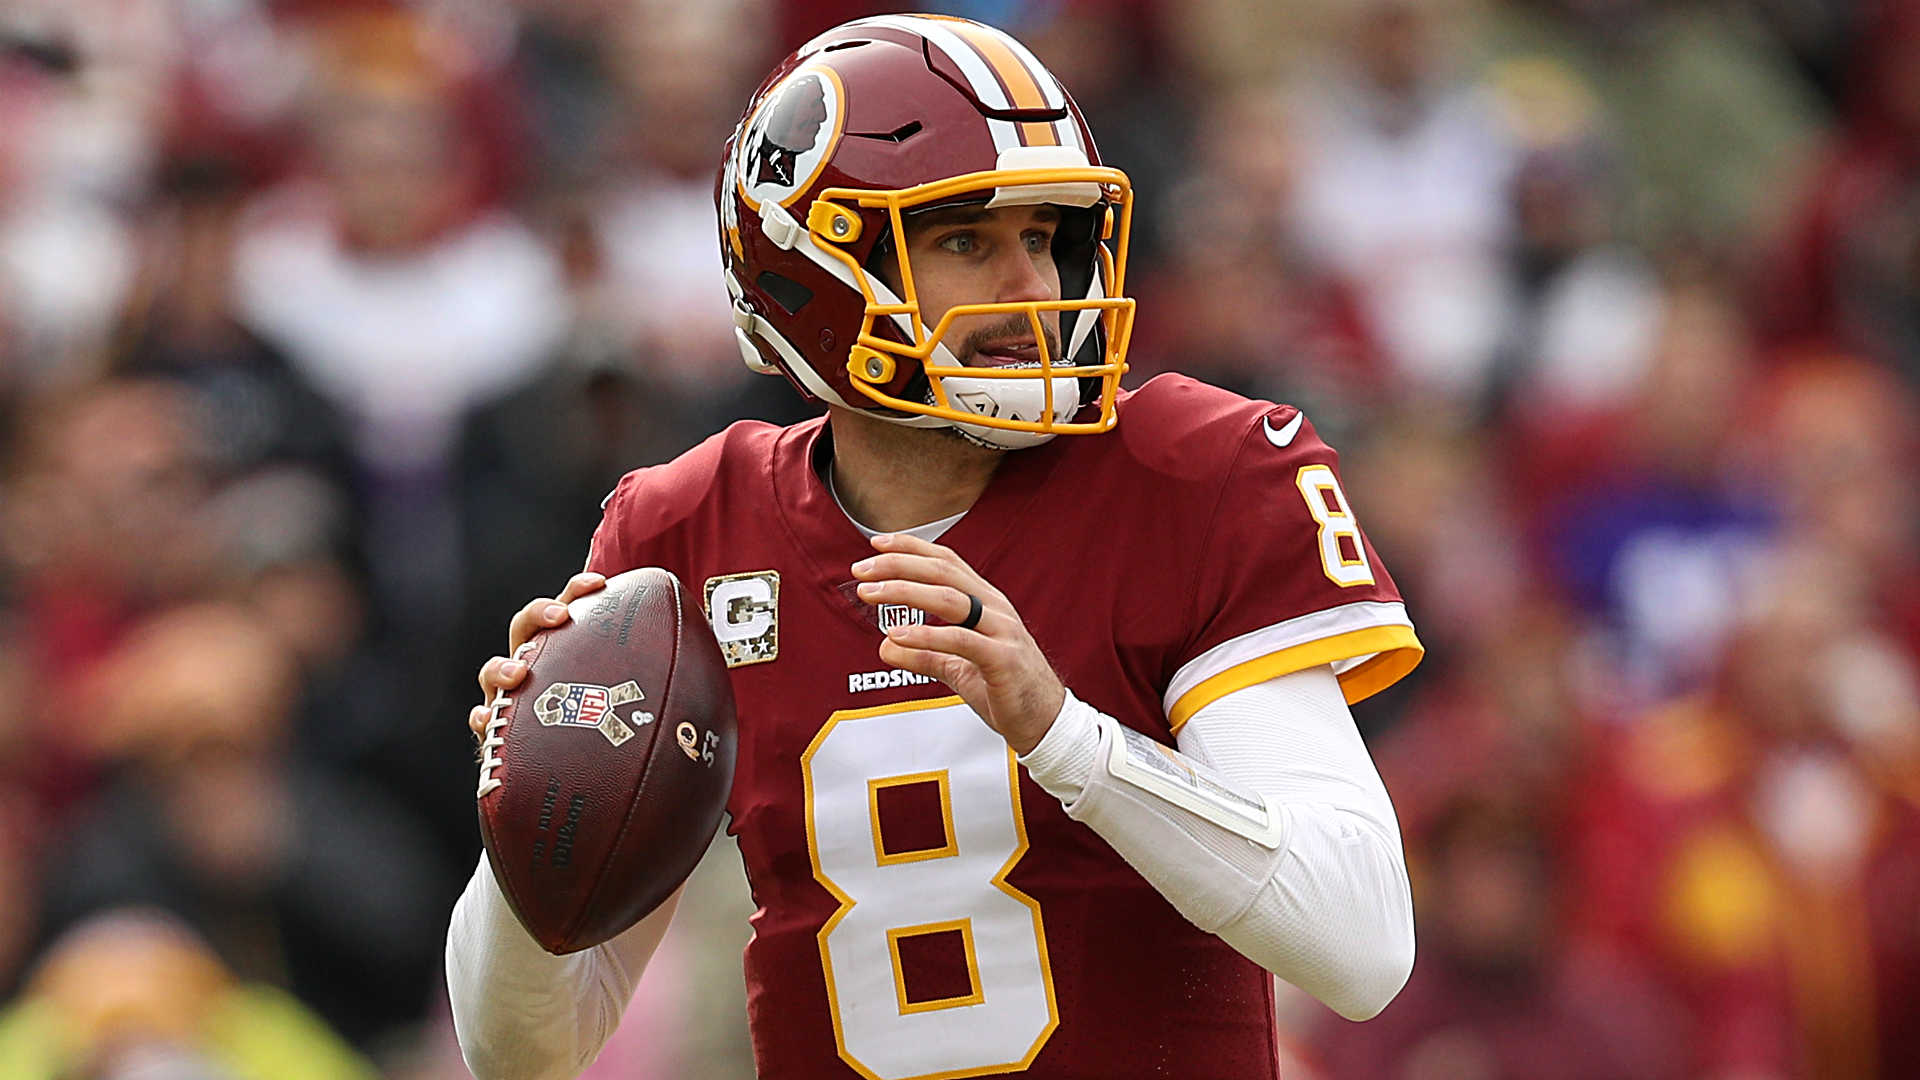 Kirk-cousins-031218-getty-ft_wfz8dovxfbrx1f8r4aby26eml